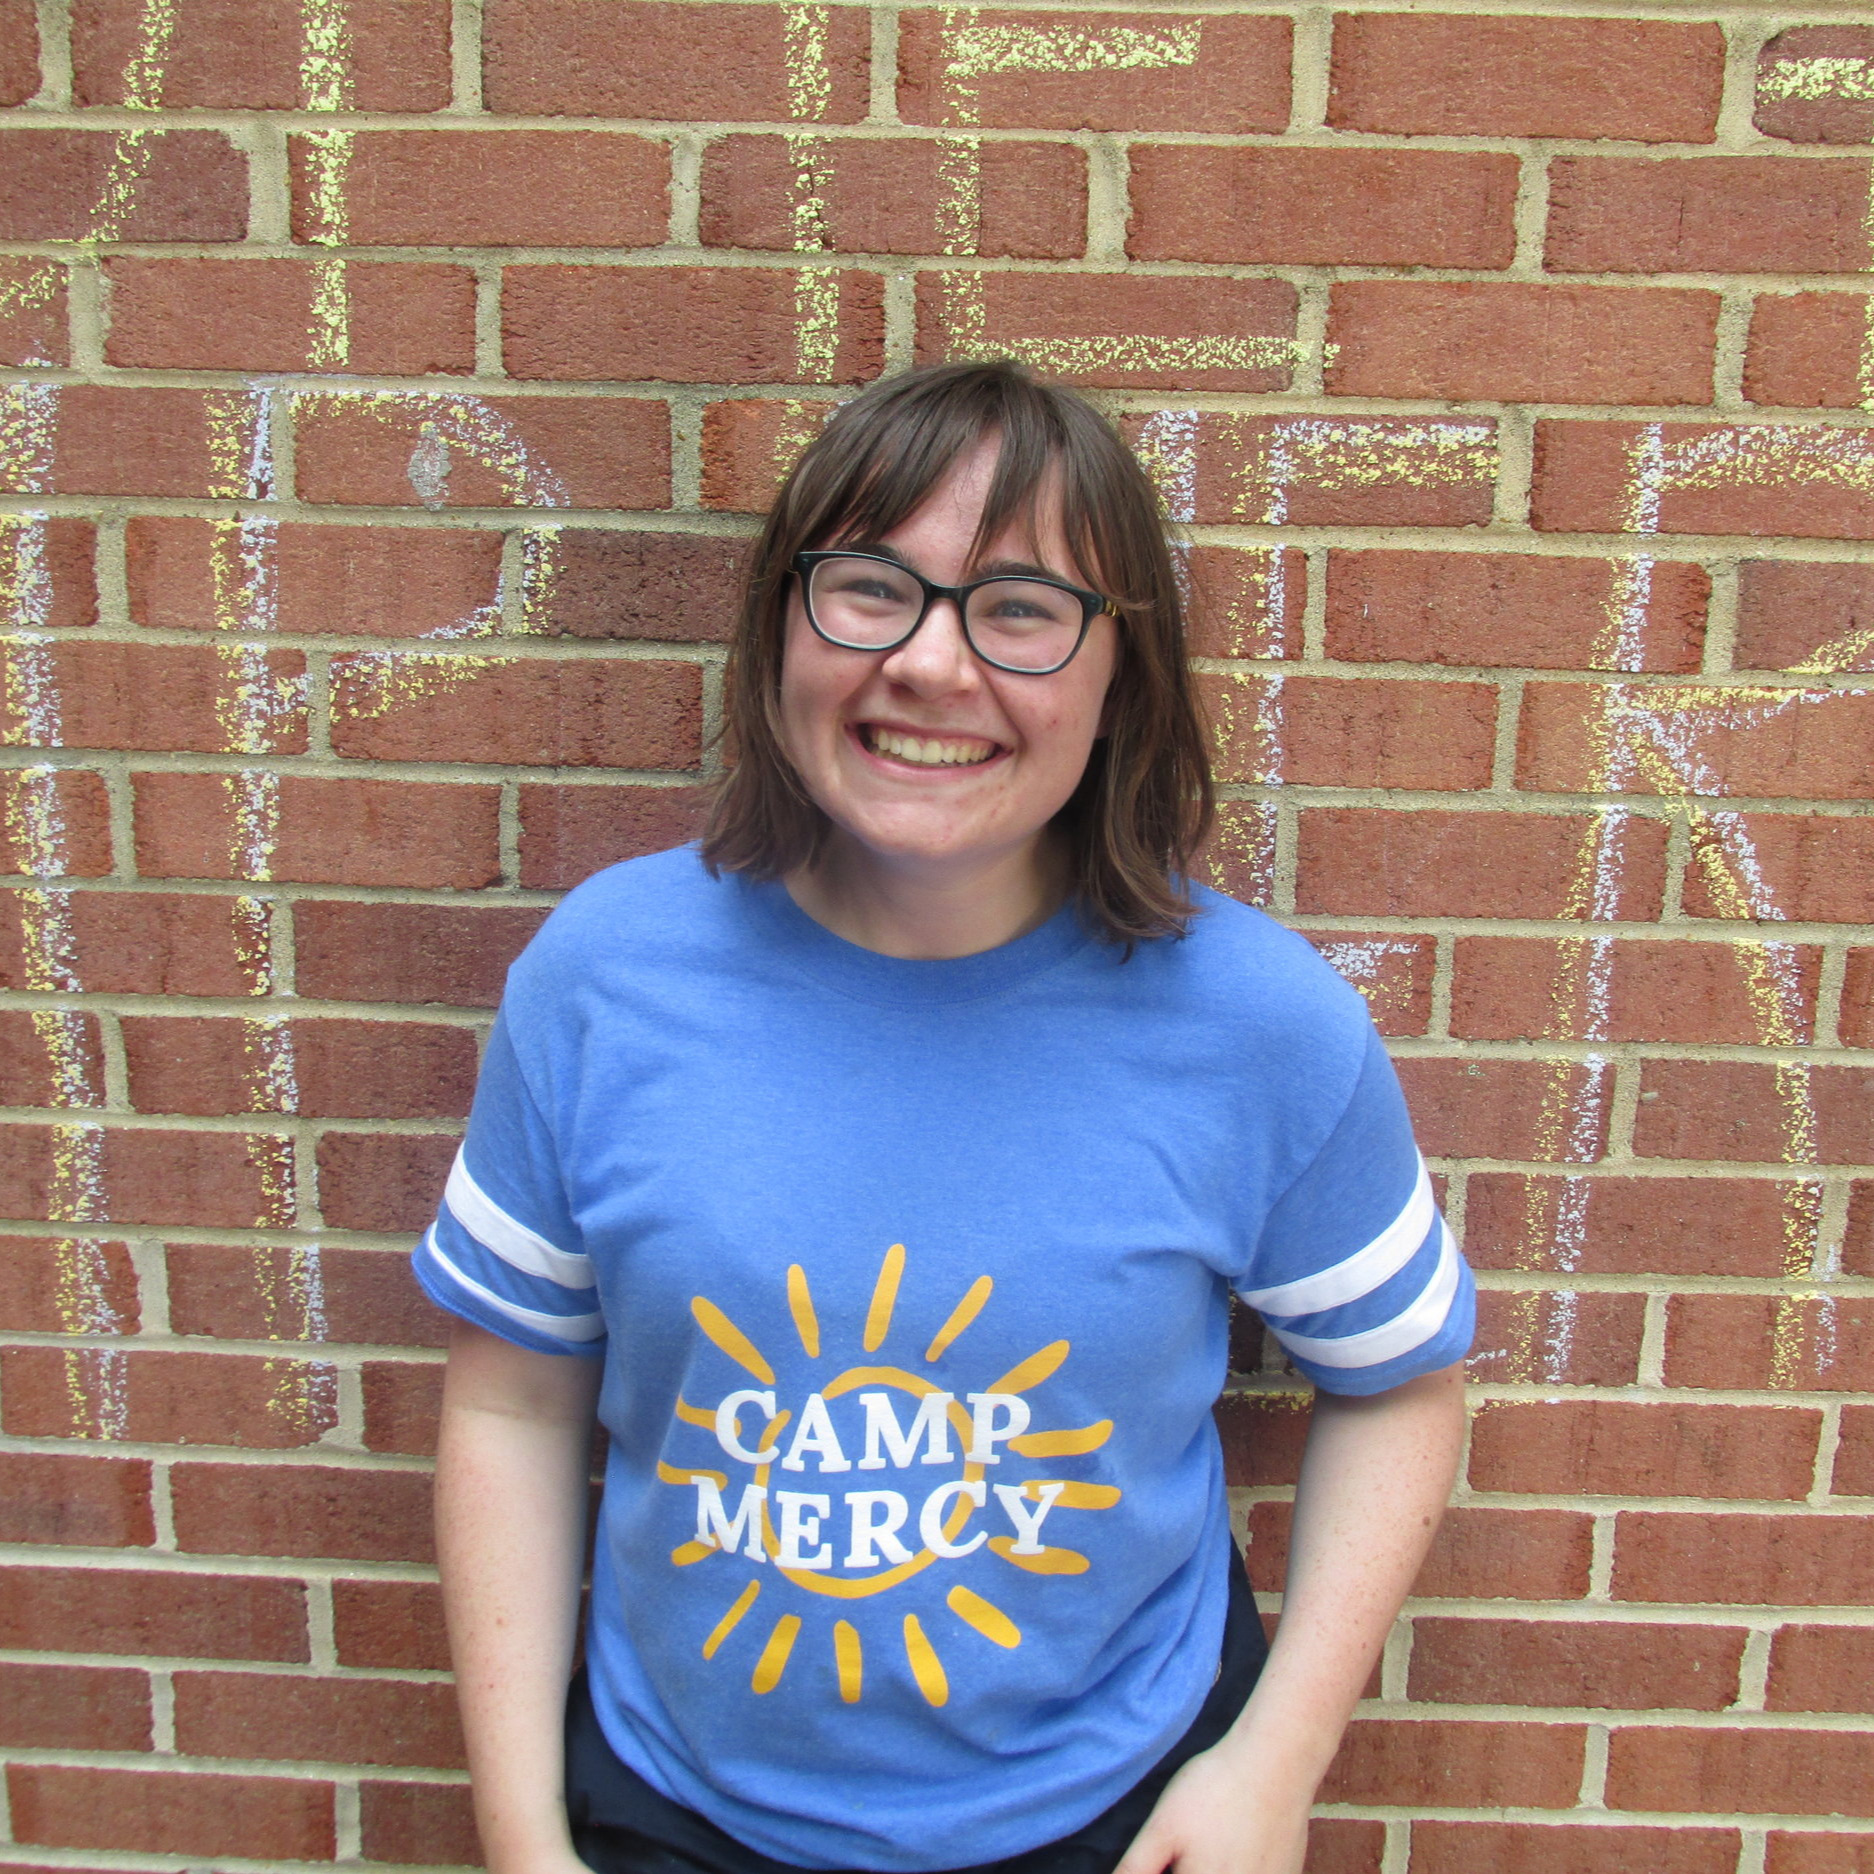 Maggie Rudman - I'm a rising sophomore at Catholic University studying Theology and Religious Studies. I love animals, musical theater, and hiking! I'm so excited to be working at Camp Mercy, and can't wait to meet all the kids!